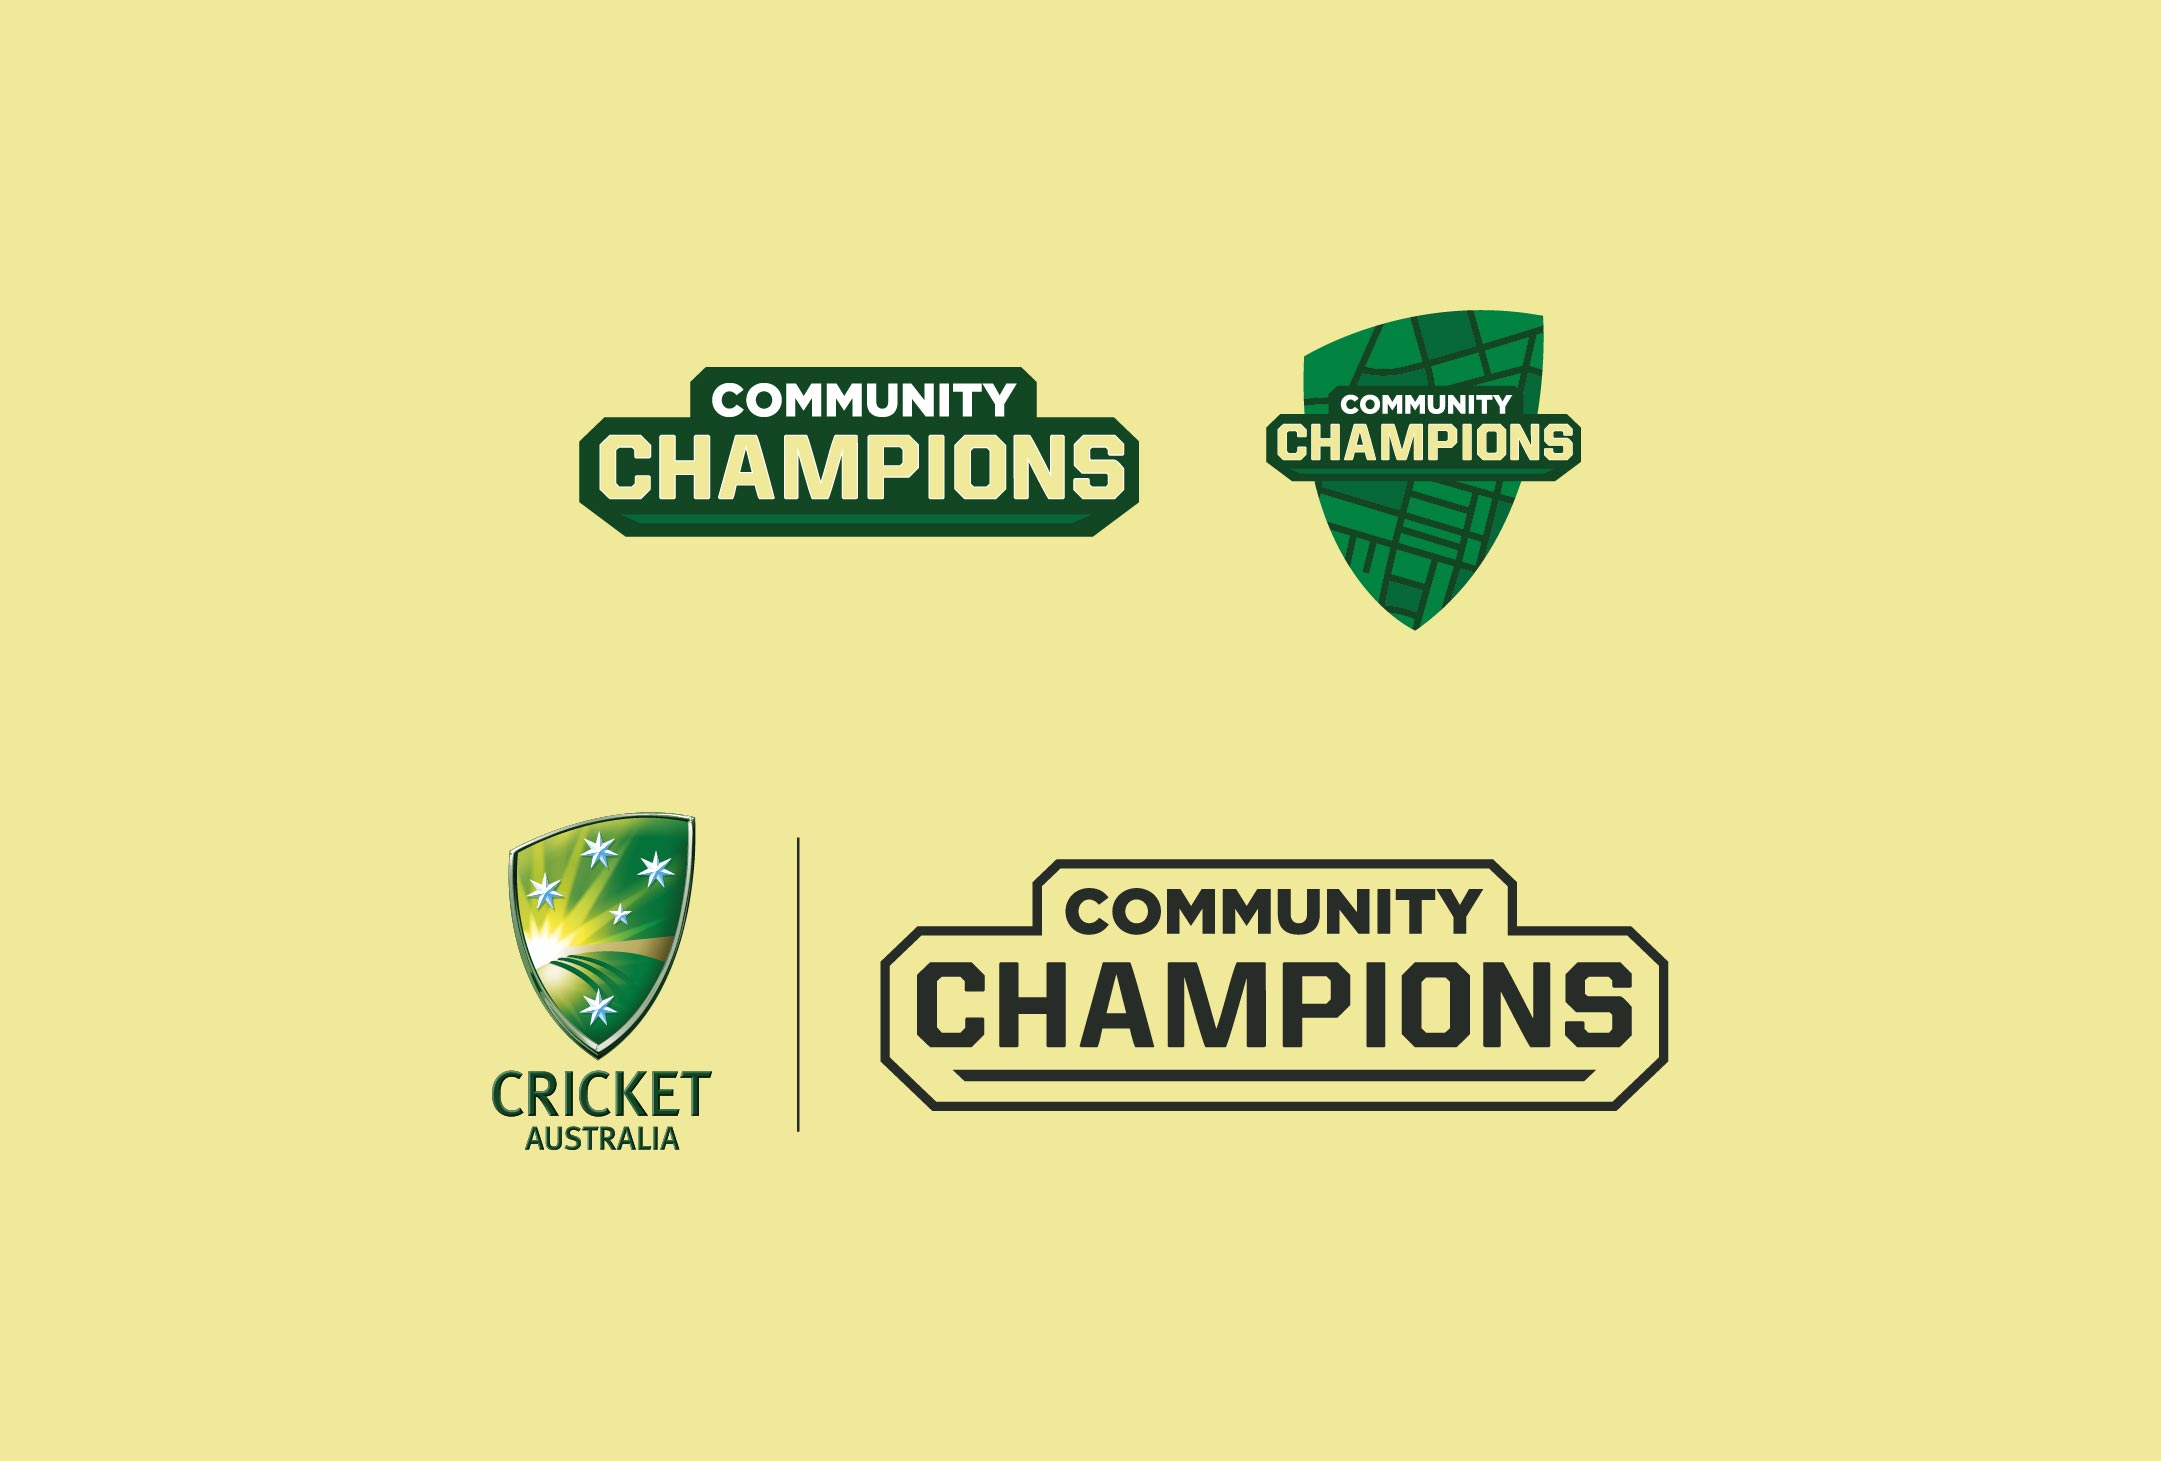 Community Champions for Cricket Australia